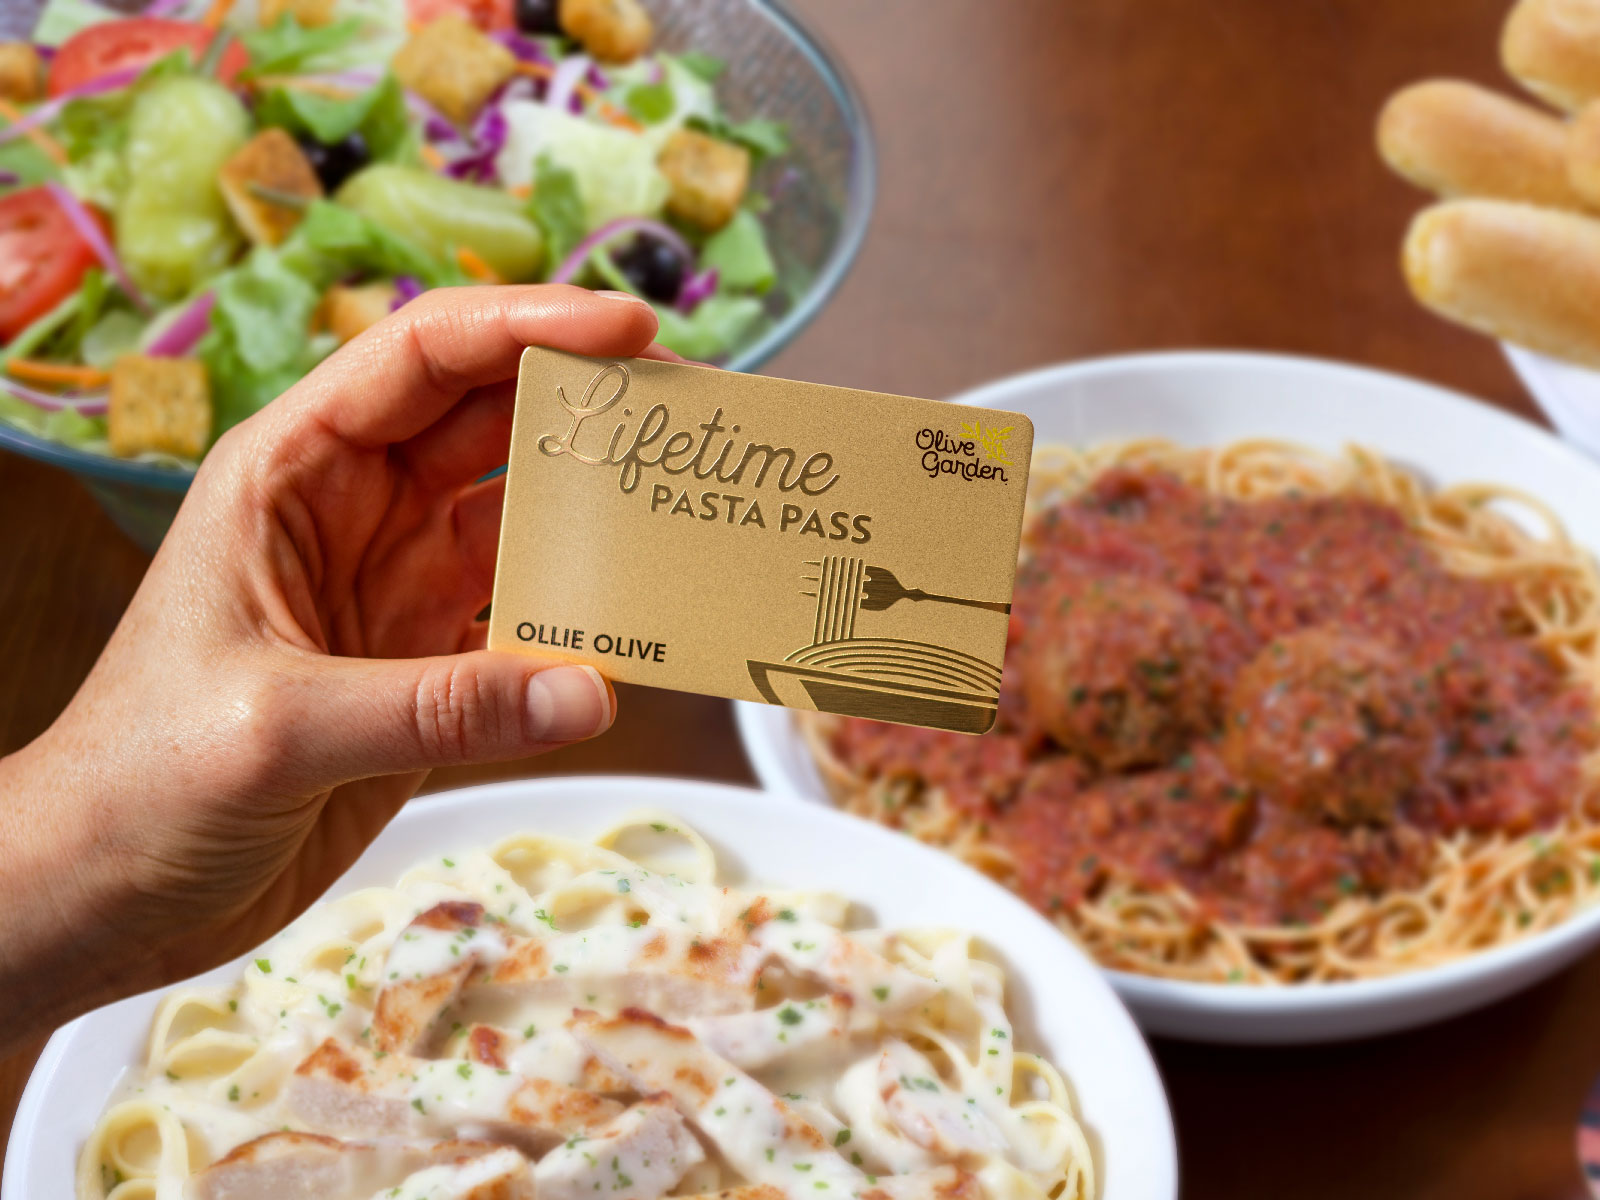 Olive Garden Is Selling Lifetime Pasta Passes—Here's How to Get One